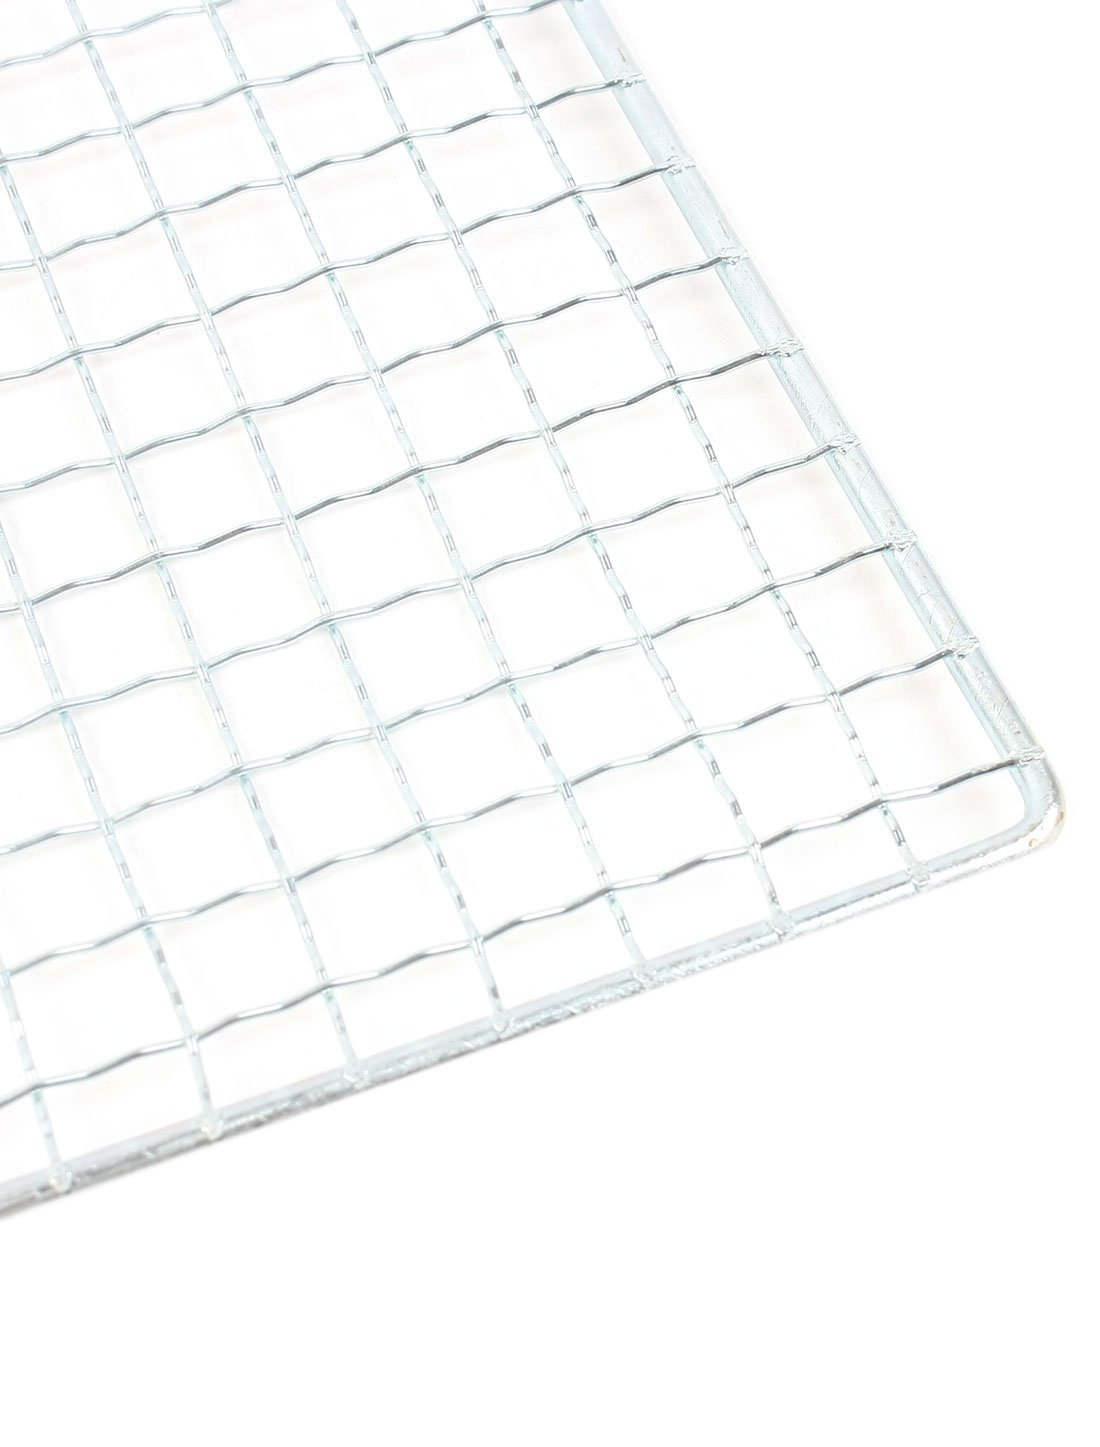 DealMux Camping Metal Rectangular Barbecue Tool Grilling Net Mesh Silver Tone